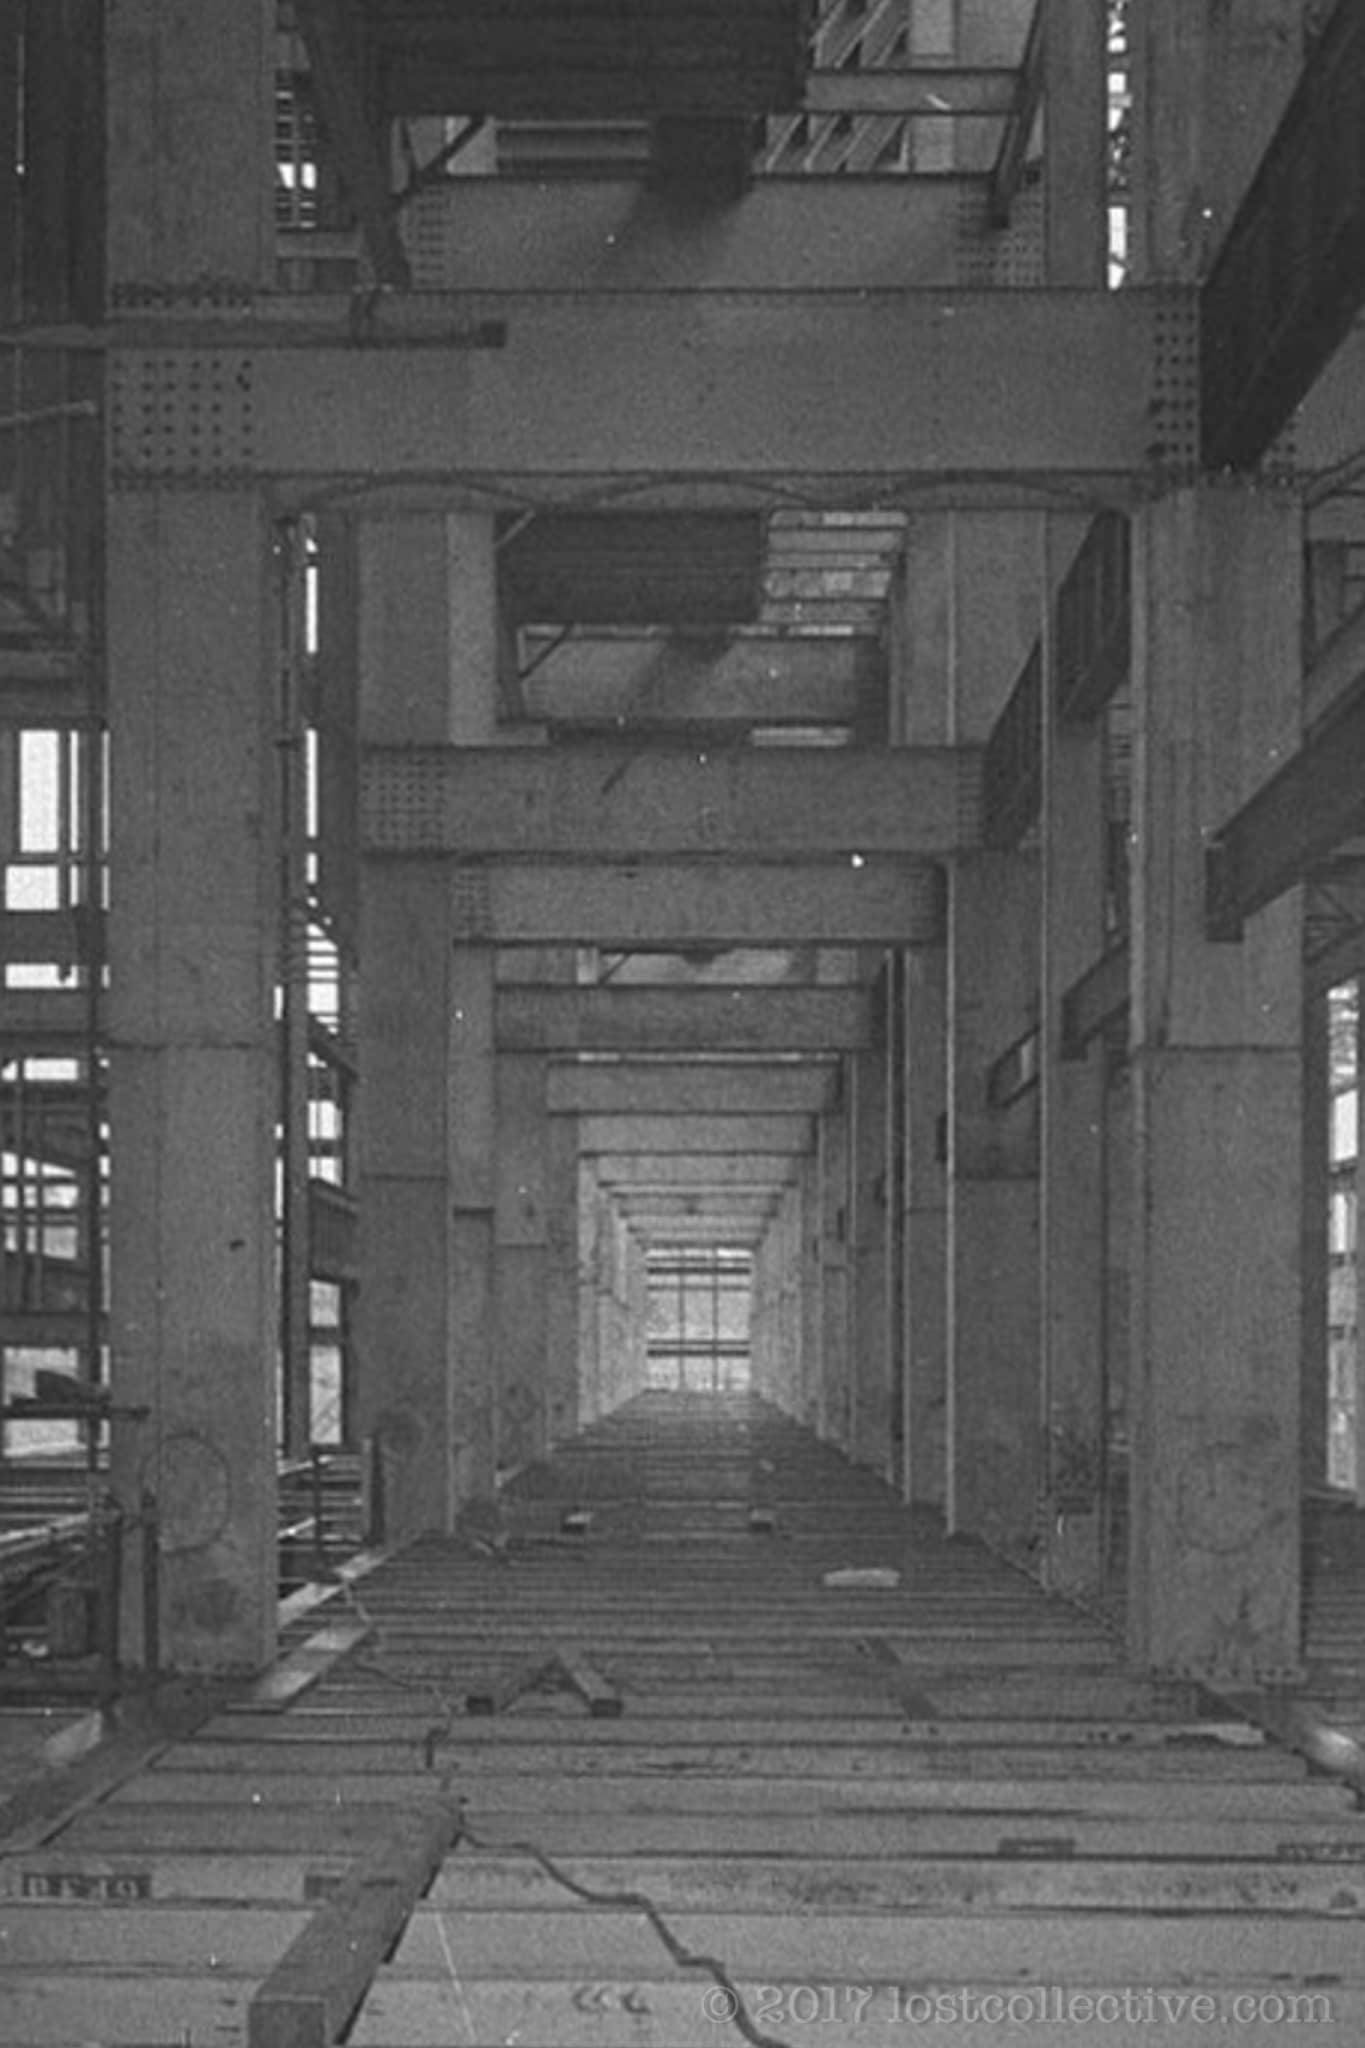 a historical photograph of large pylons supporting an overhead walkway in the abandoned wangi power station - lost collective<img src=